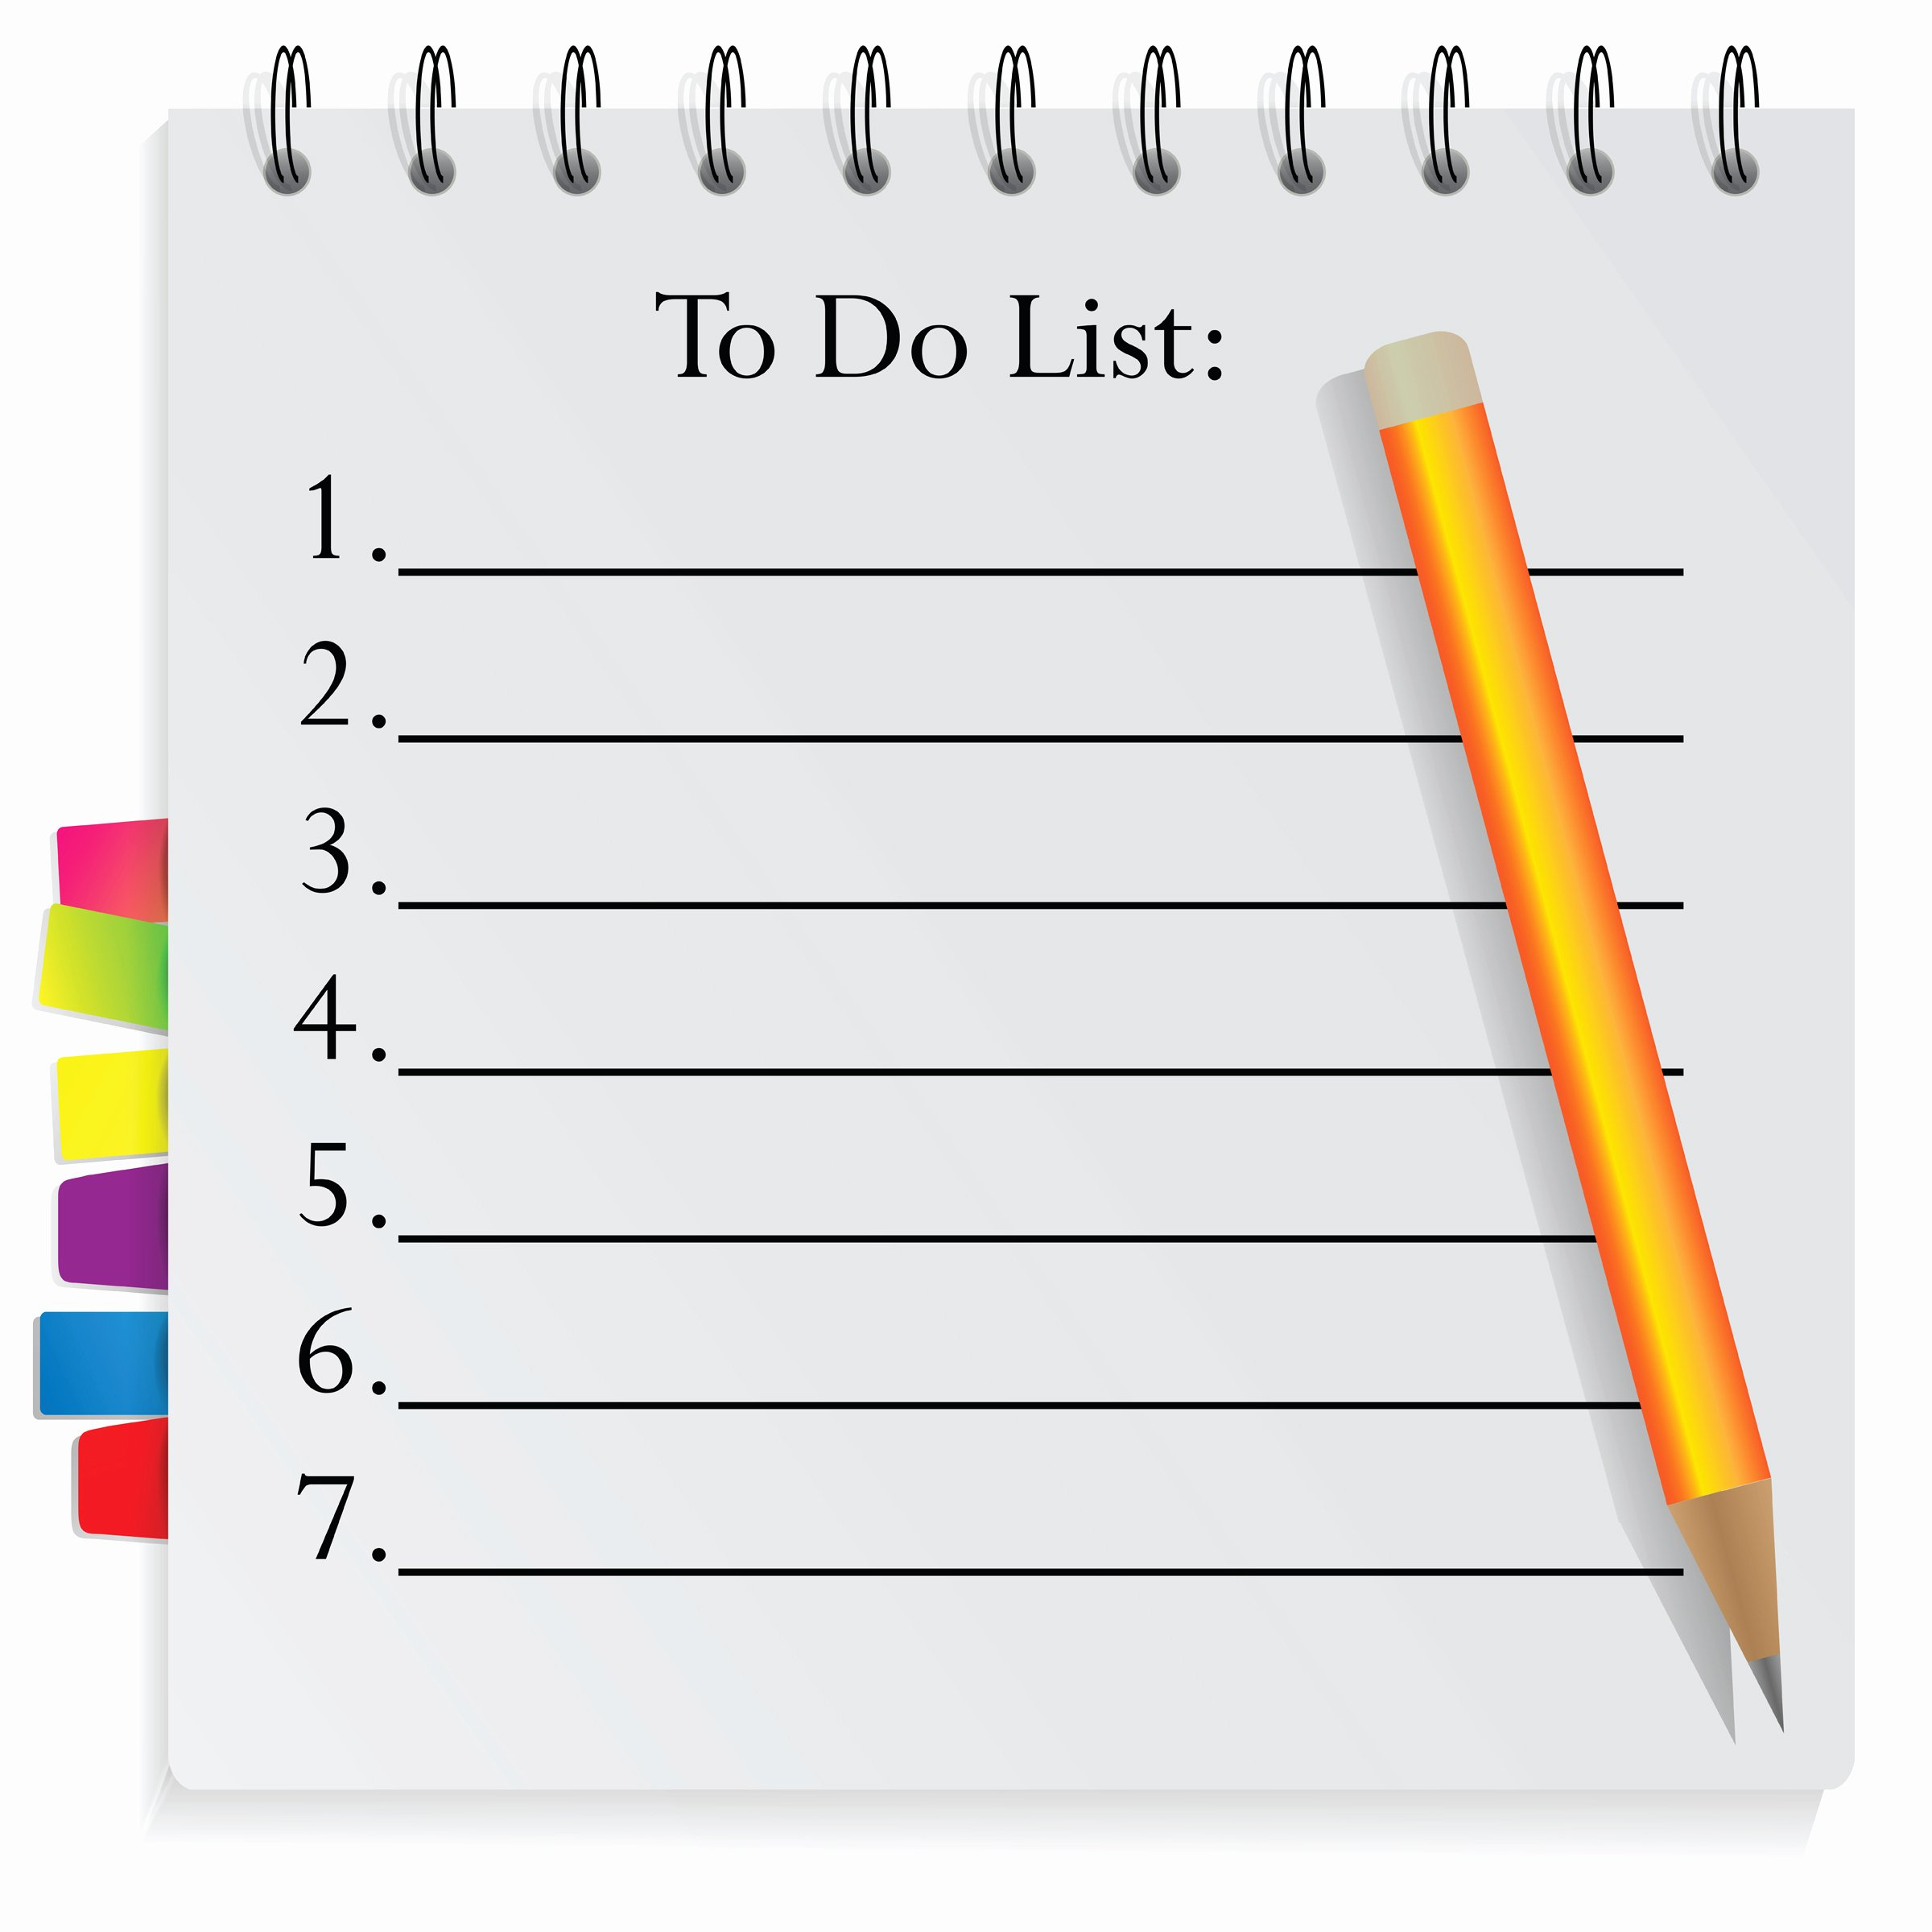 To Do List Template Pdf Lovely 6 to Do List Templates Excel Pdf formats